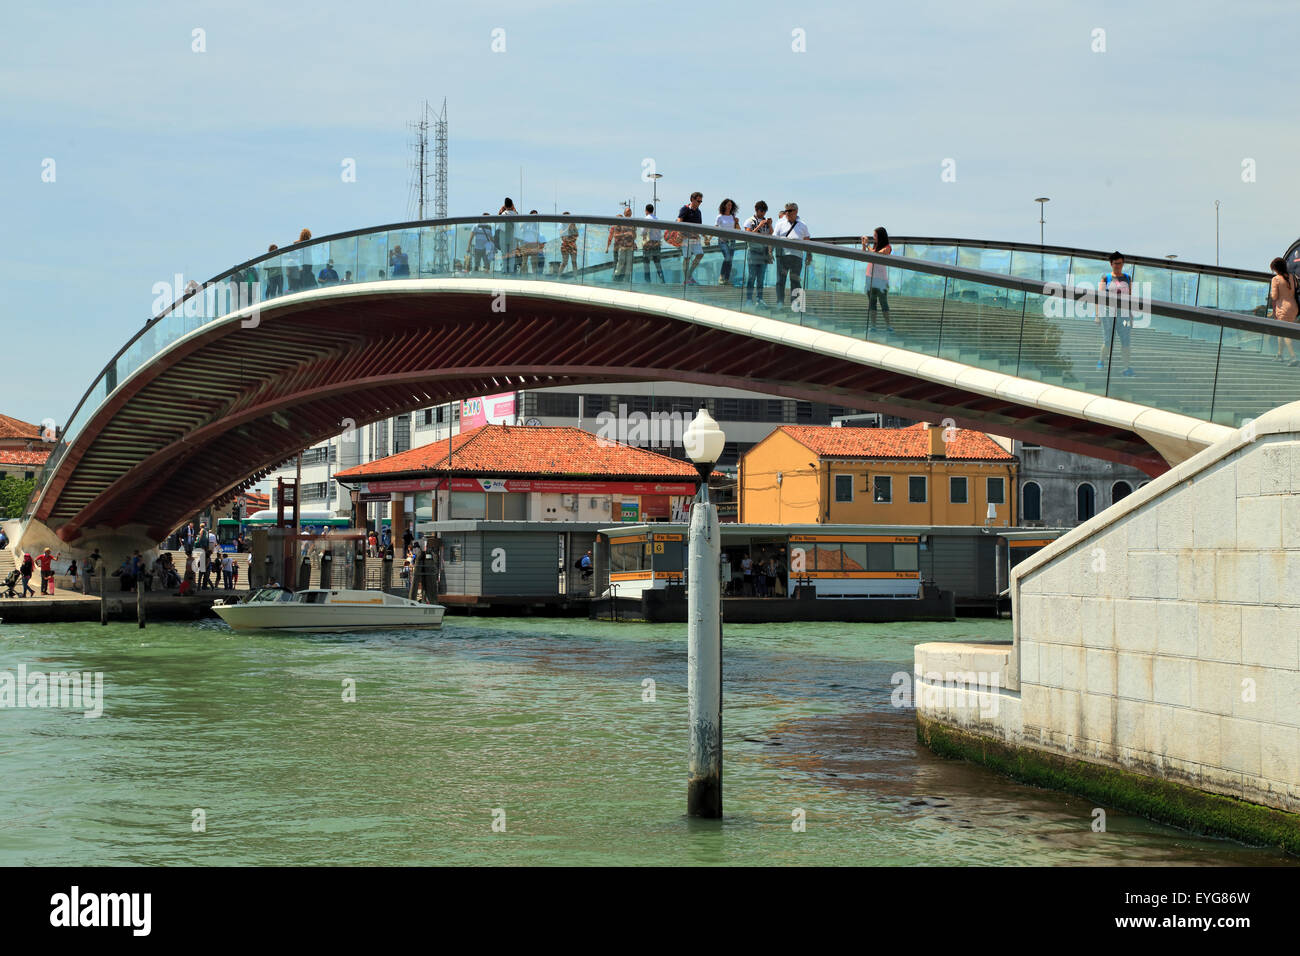 Ponte di Calatrava bridge -  Ponte della Costituzione - Constitution Bridge Stock Photo